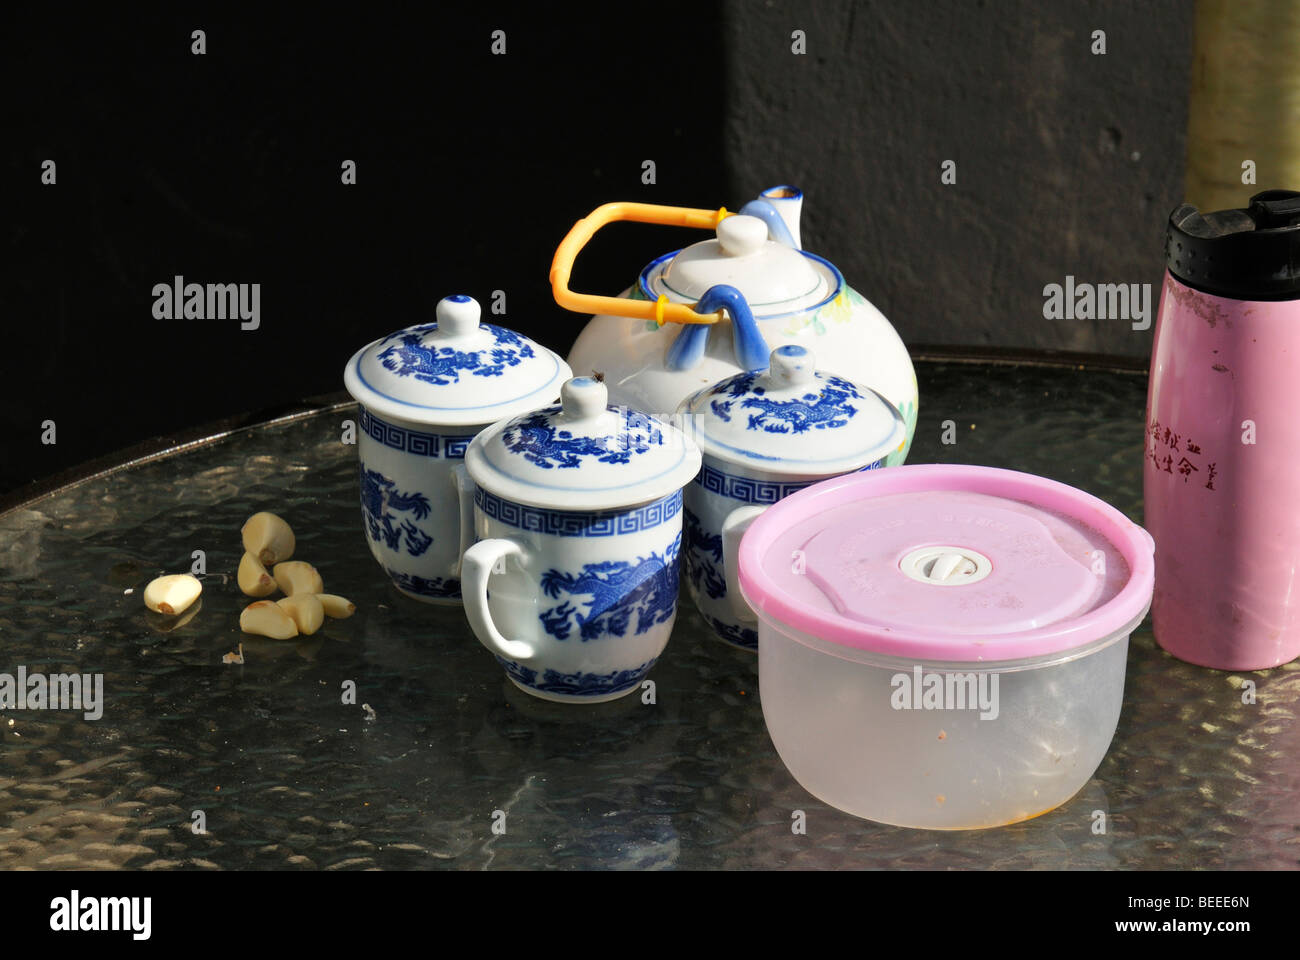 Cloves of garlic, a Chinese tea set and a pink thermos flask, Beijing, China - Stock Image